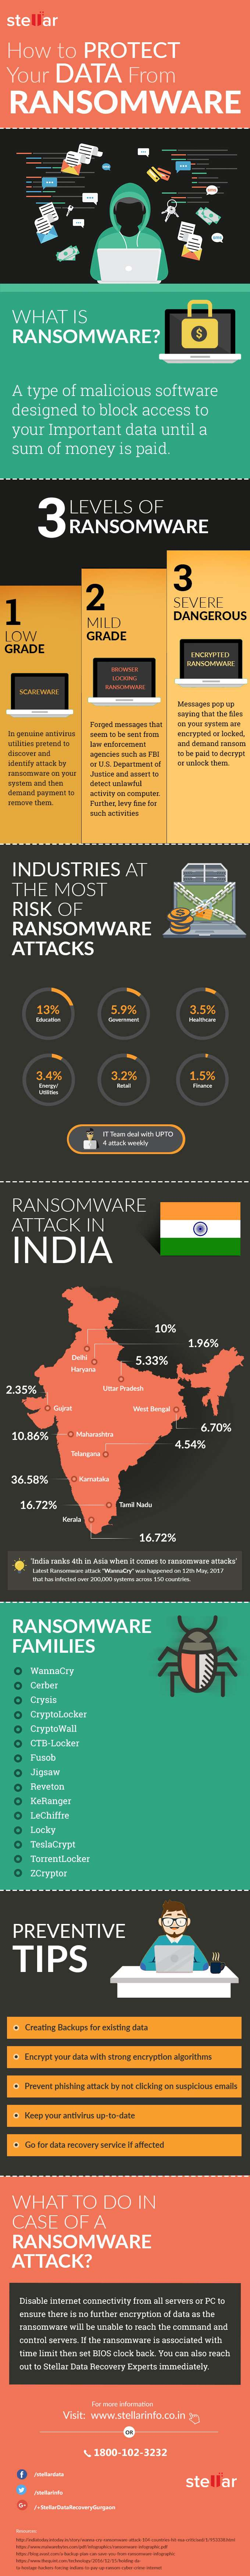 Ransomware types and attack infographic